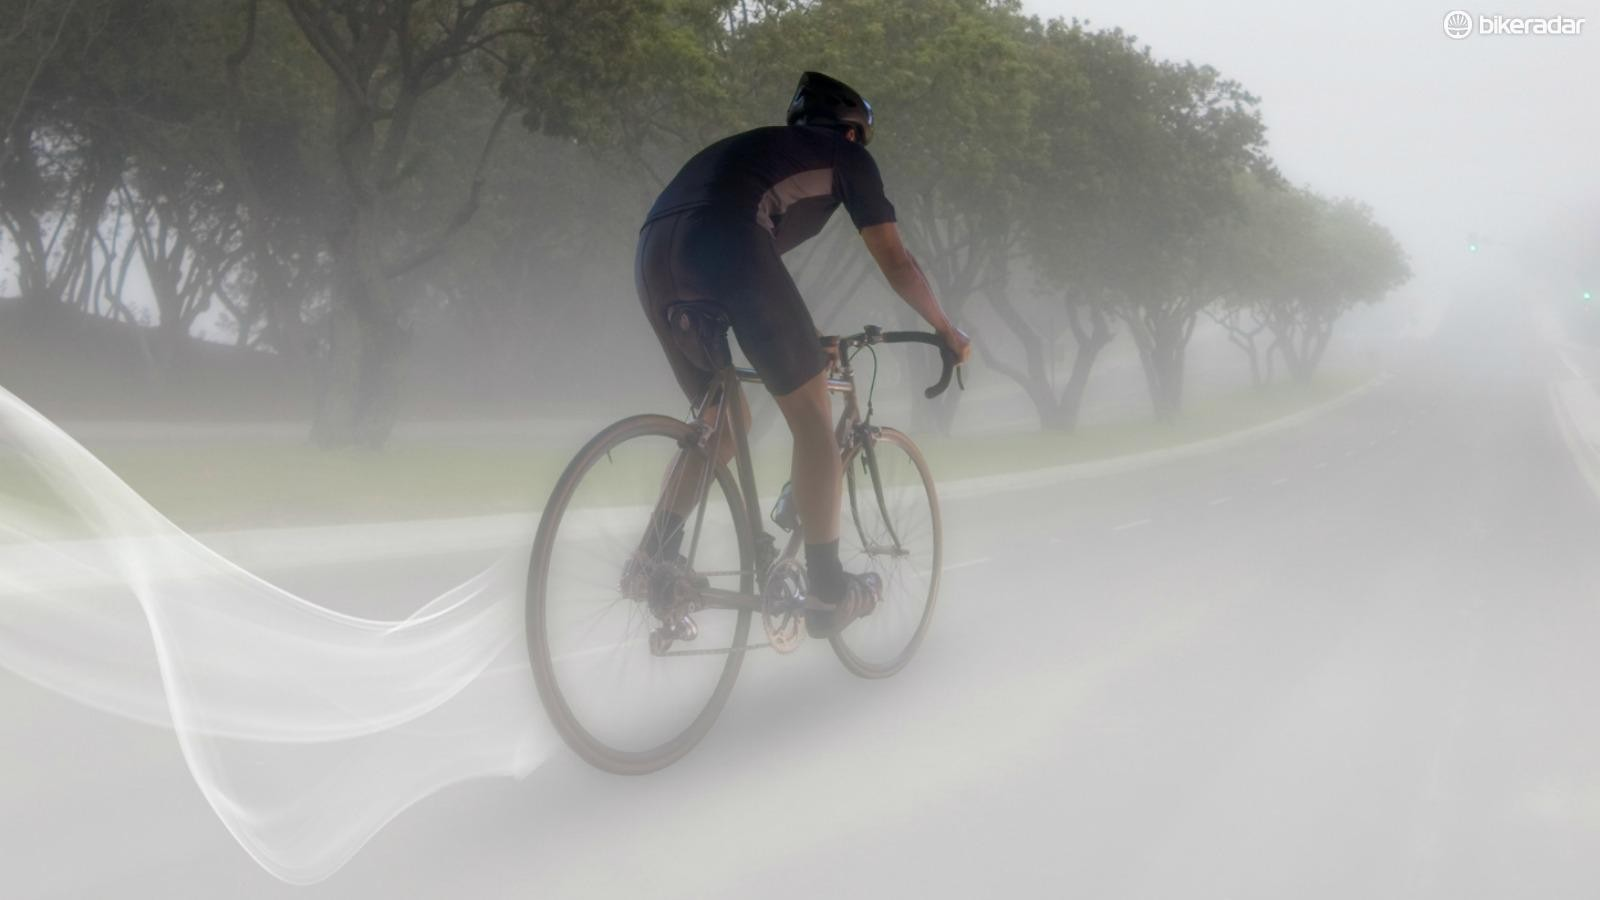 Cycling should fit round work and home life, and you can train up in less than eight hours per week